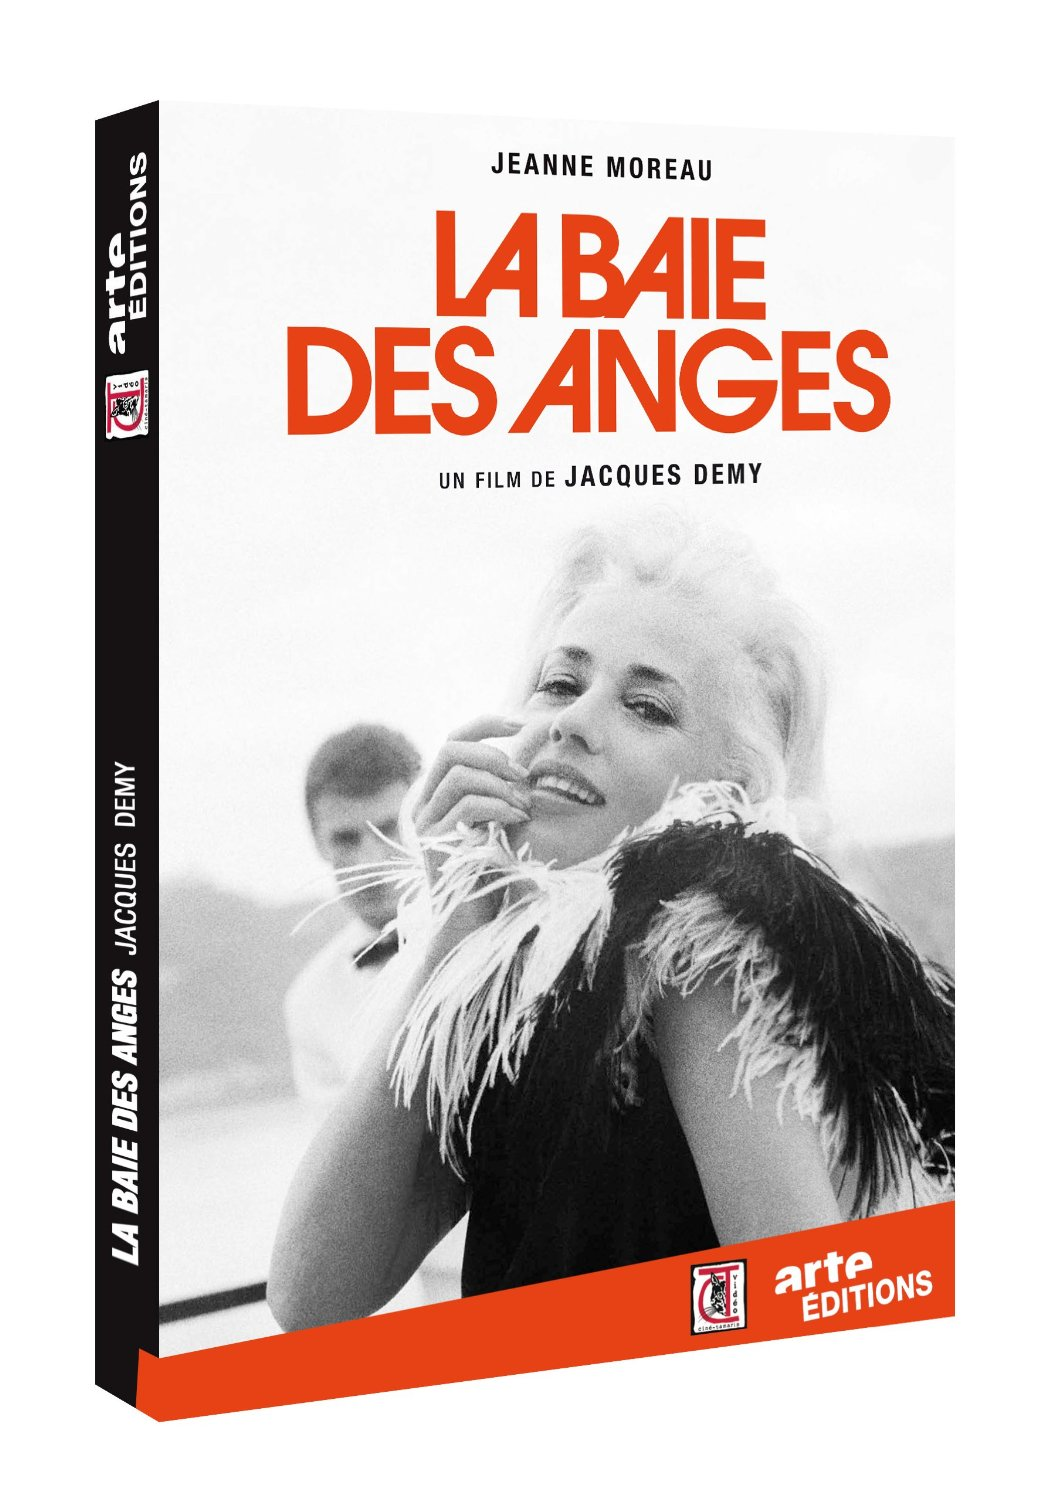 La Baie des anges [FullBluray] [HDRip-1080p] [FRENCH] [Multi]